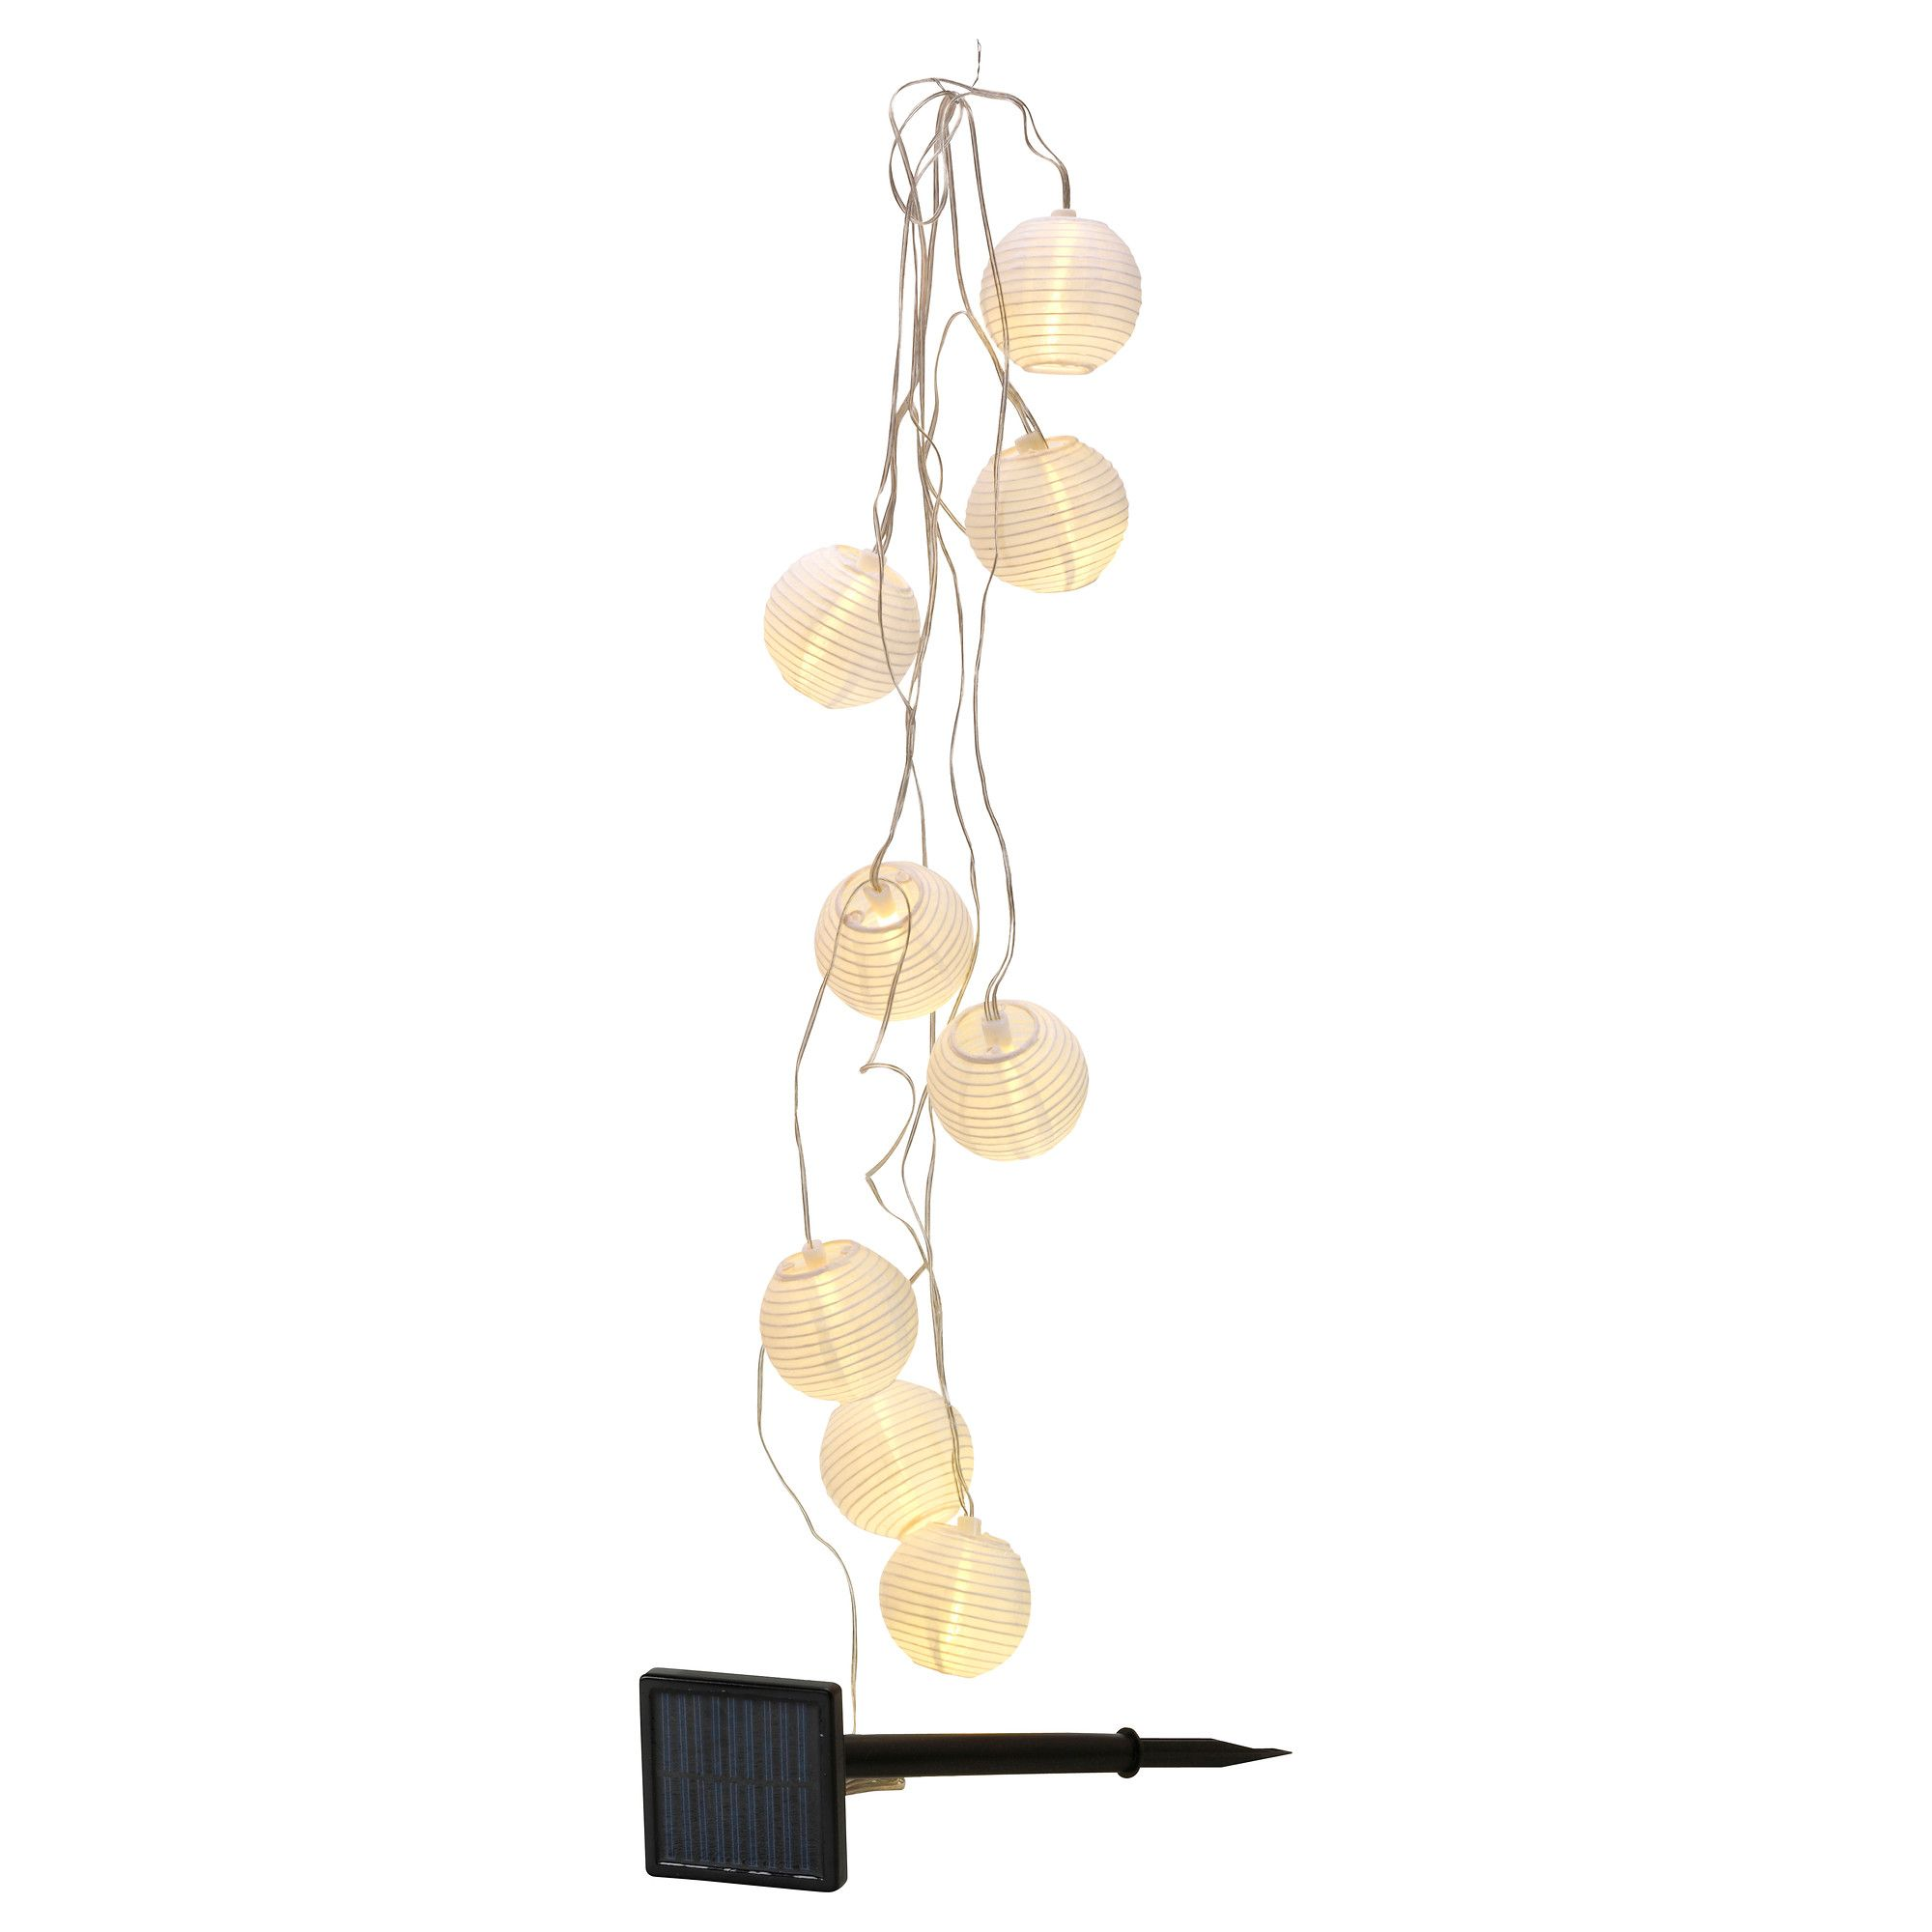 decorative solvinden solar powered light chain 8 ikea summer rooms pinterest solar. Black Bedroom Furniture Sets. Home Design Ideas